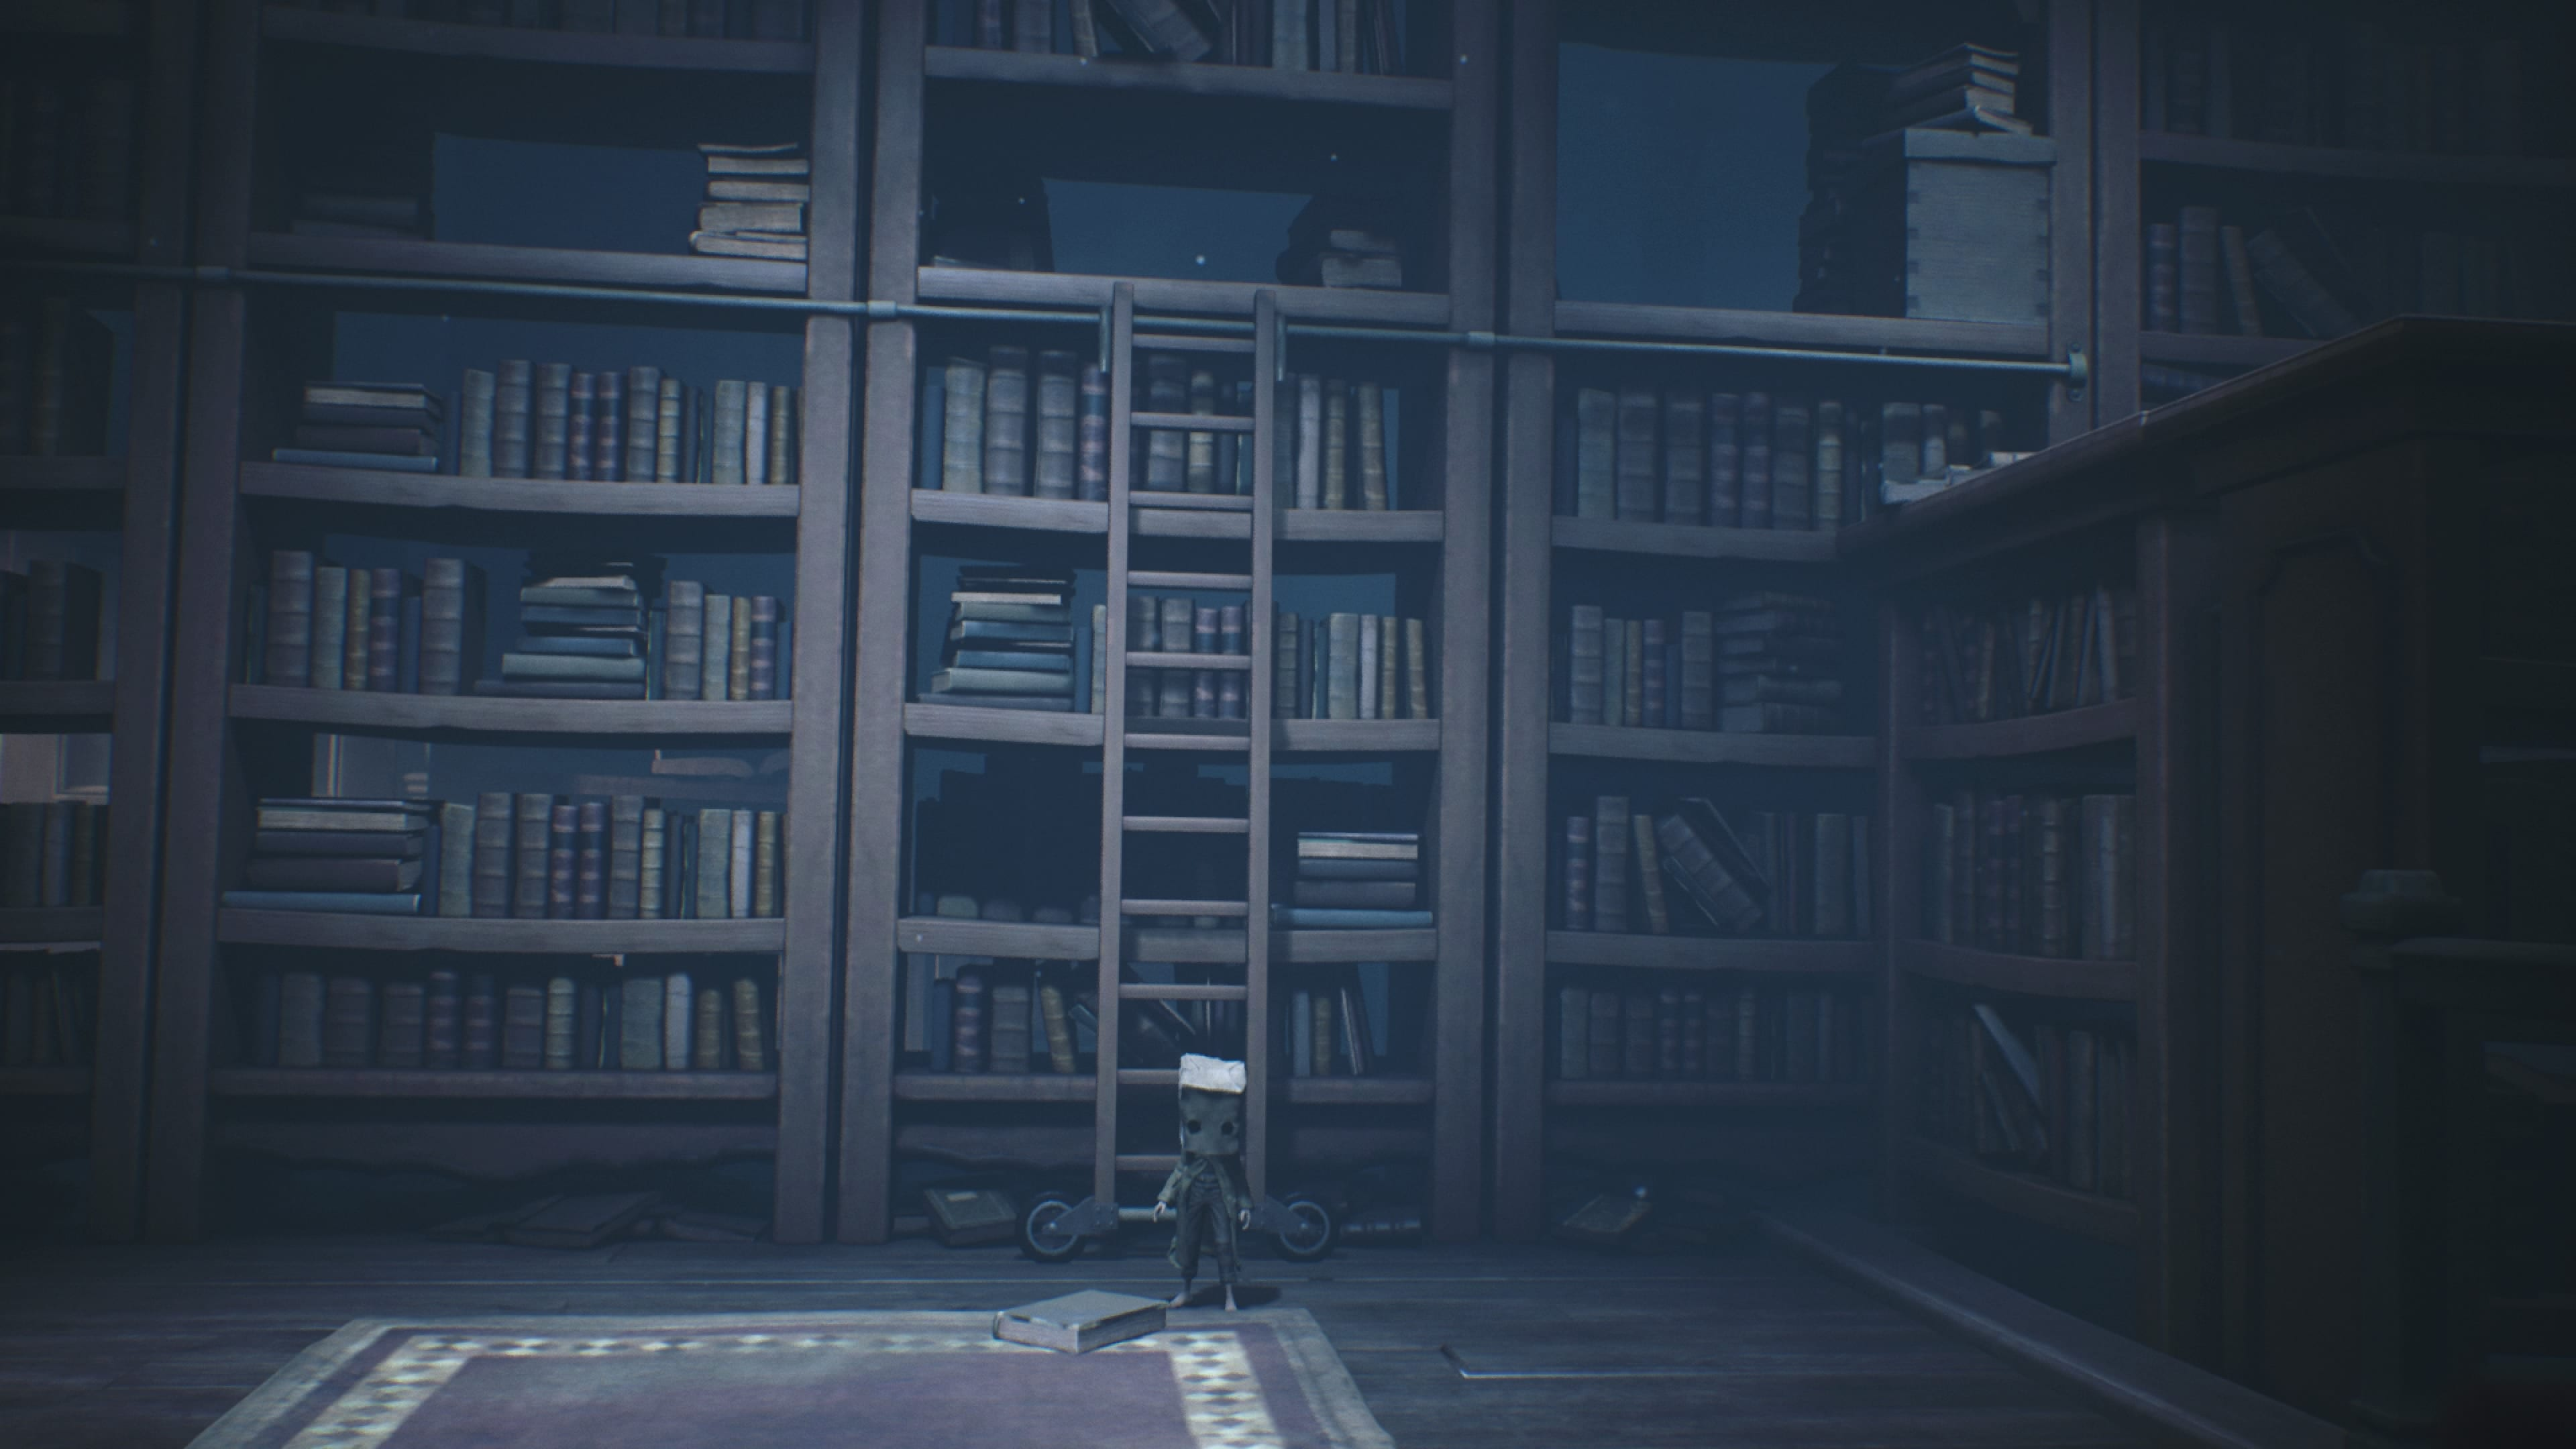 Little Nightmares 2 Hut Bibliothek Schule